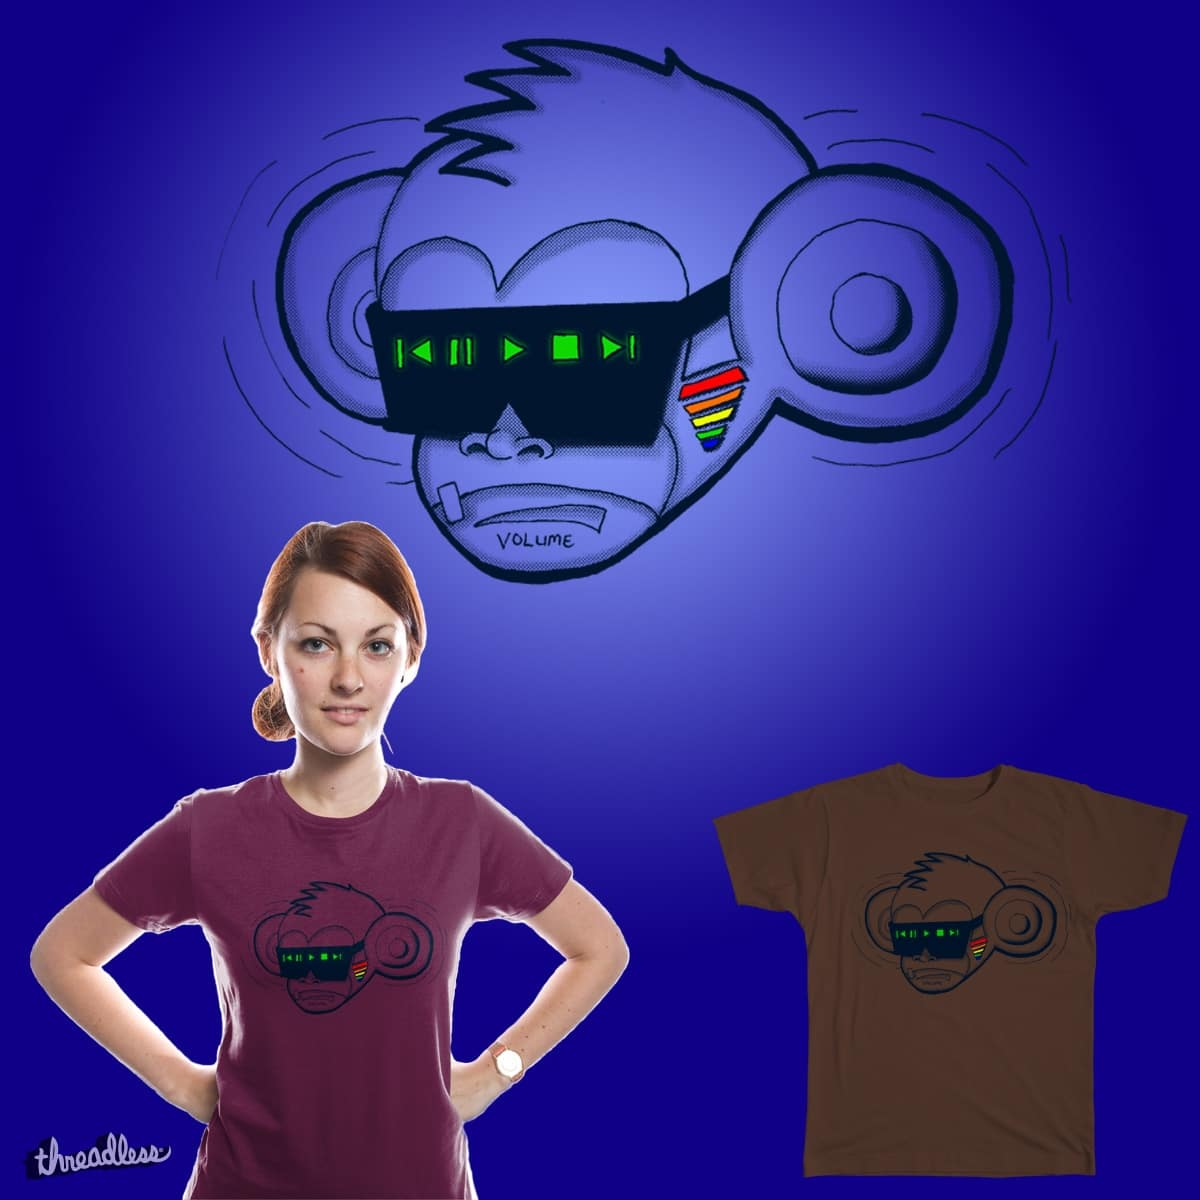 MONKEY MEDIA PLAYER by Max439 on Threadless